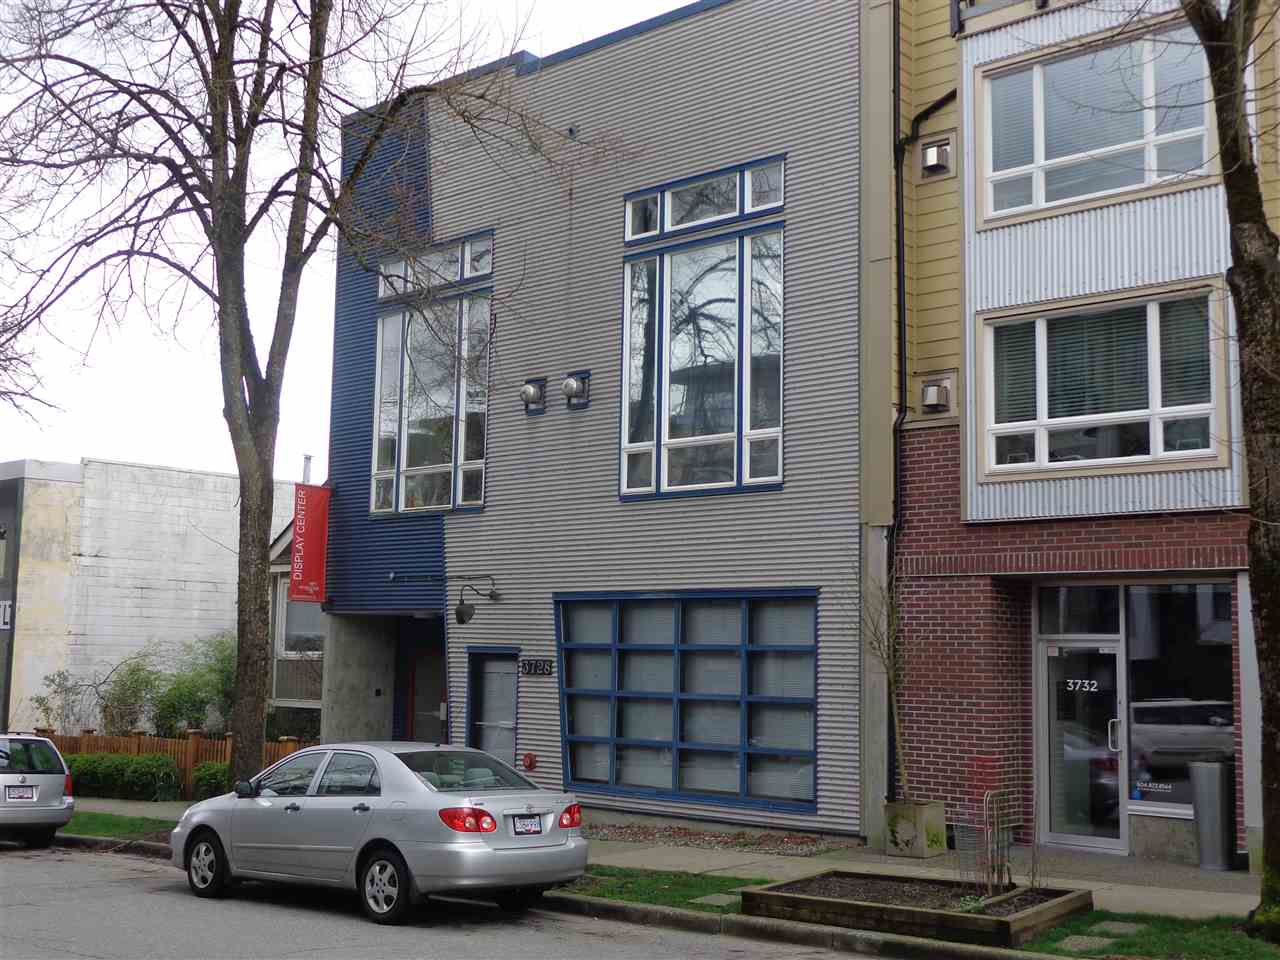 Main Photo: 1 3726 COMMERCIAL STREET in Vancouver: Victoria VE Condo for sale (Vancouver East)  : MLS(r) # R2037382